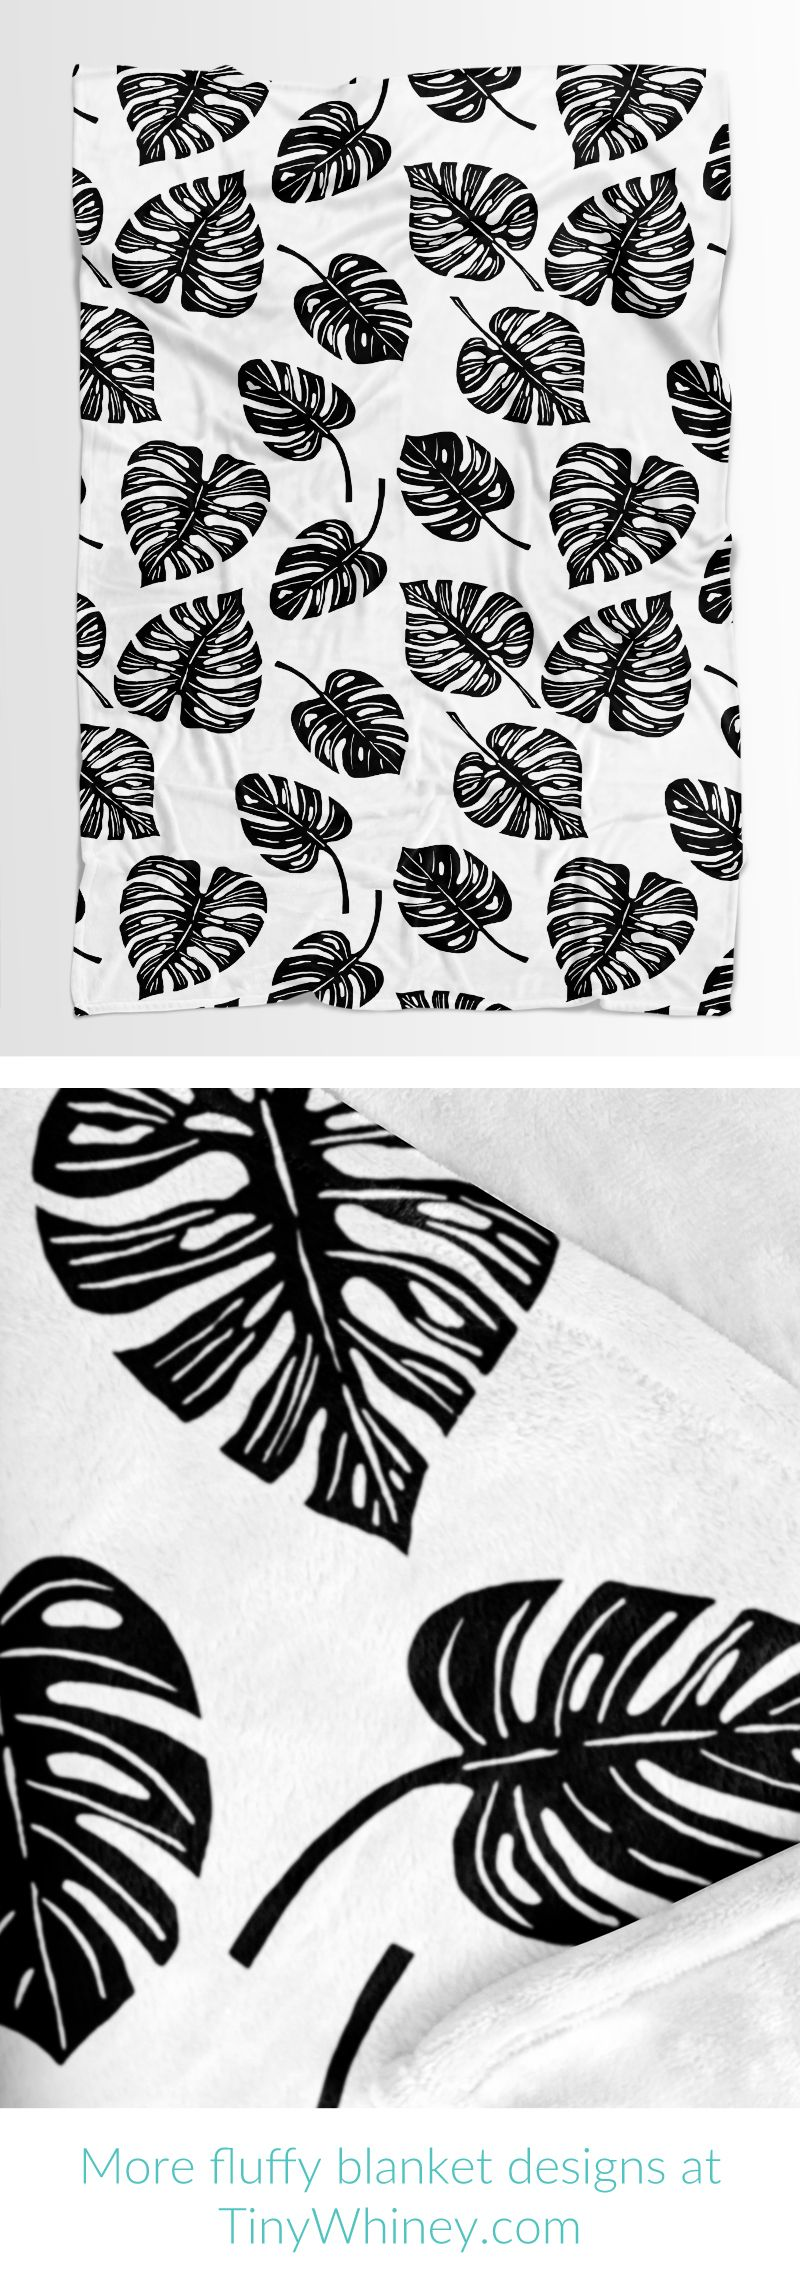 Snuggly Soft Baby Blanket With A High Contrast Black And White Monstera Leaf Print 30 X40 Ab Printed Baby Blanket Baby Sleeping Blanket Soft Baby Blankets [ 2284 x 800 Pixel ]